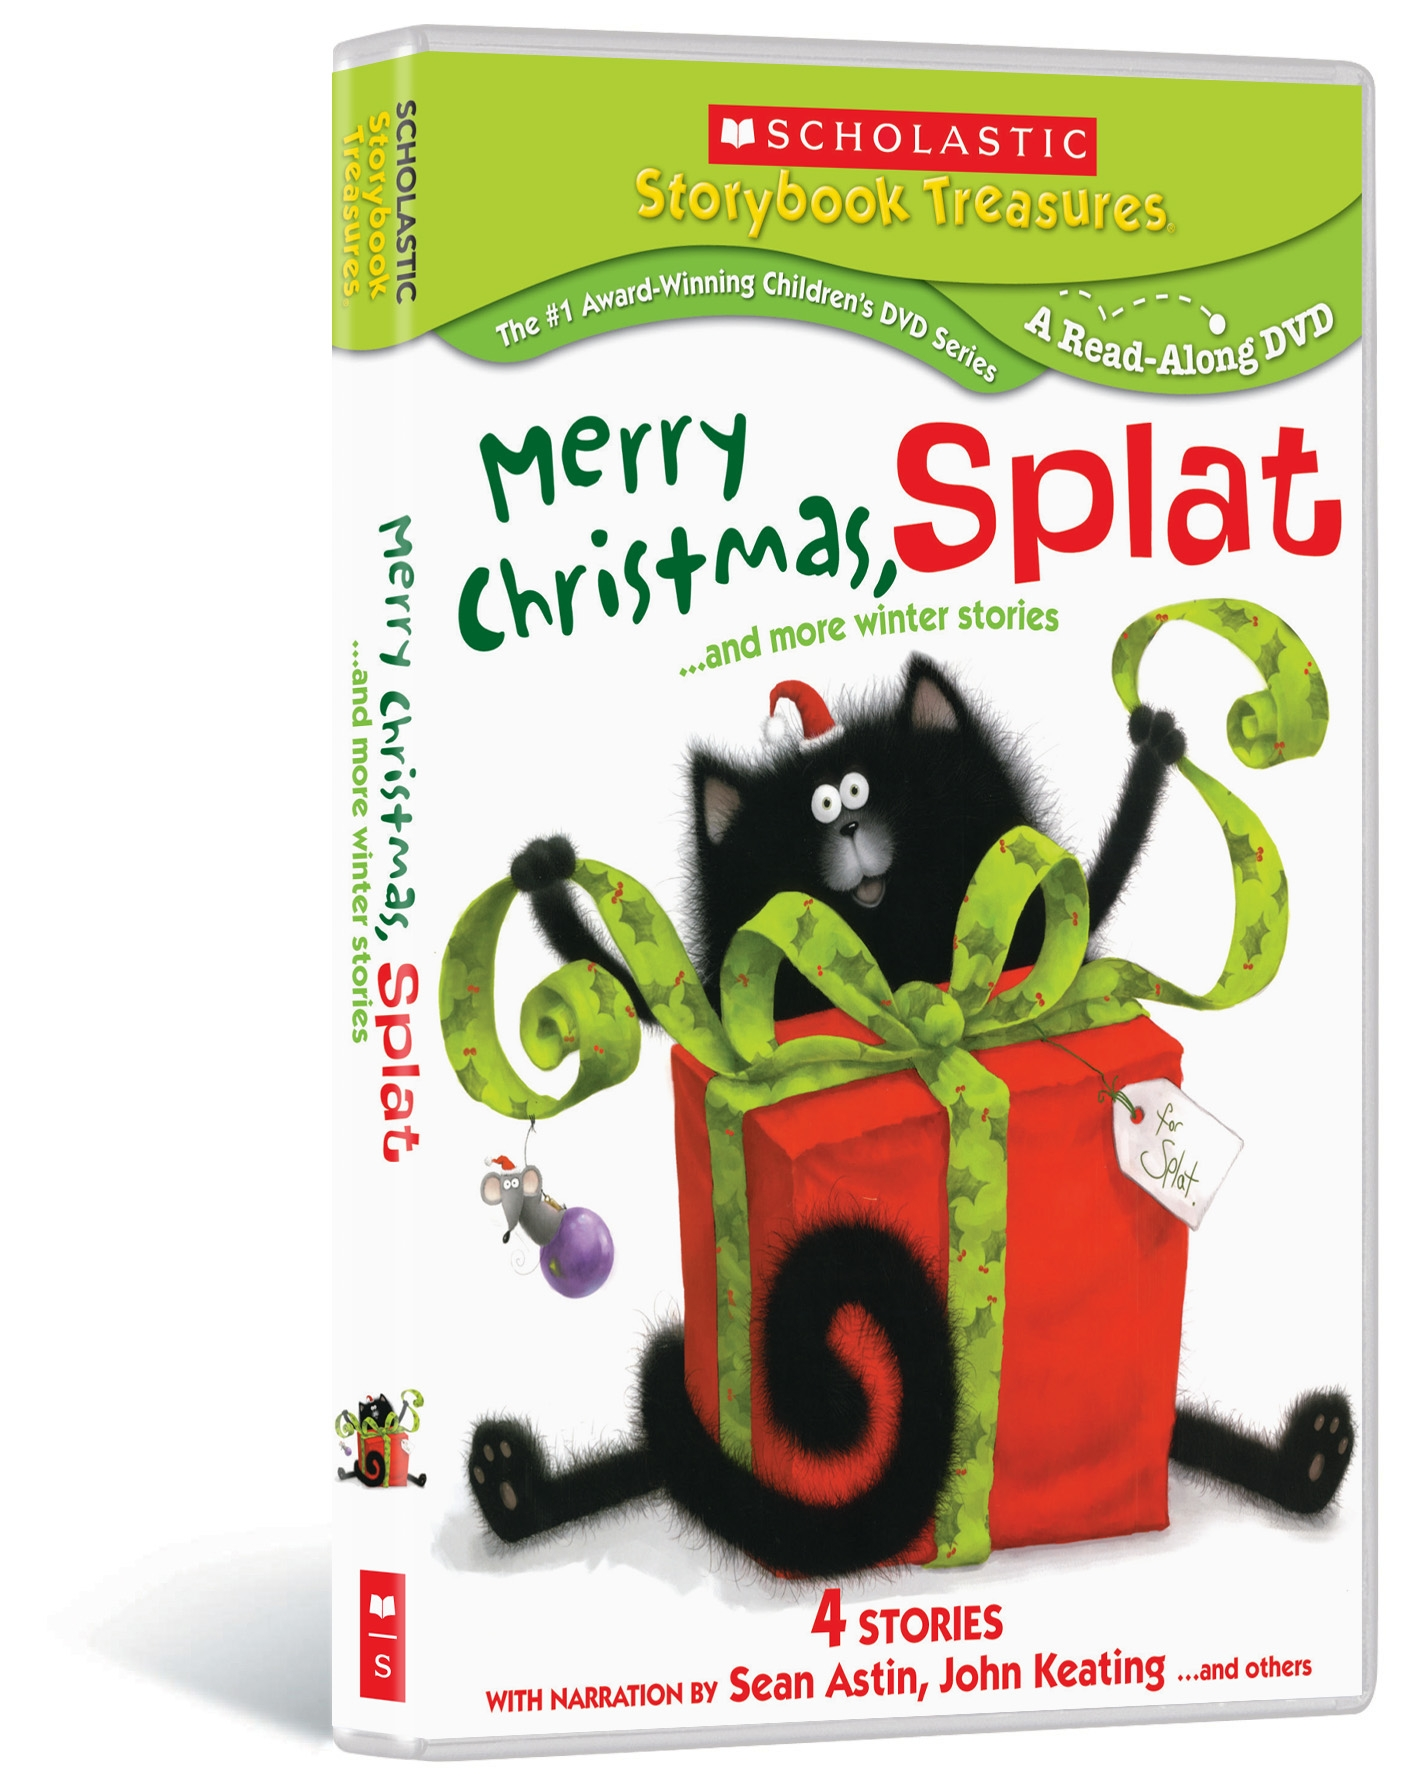 Merry Christmas, Splat: Movie Review